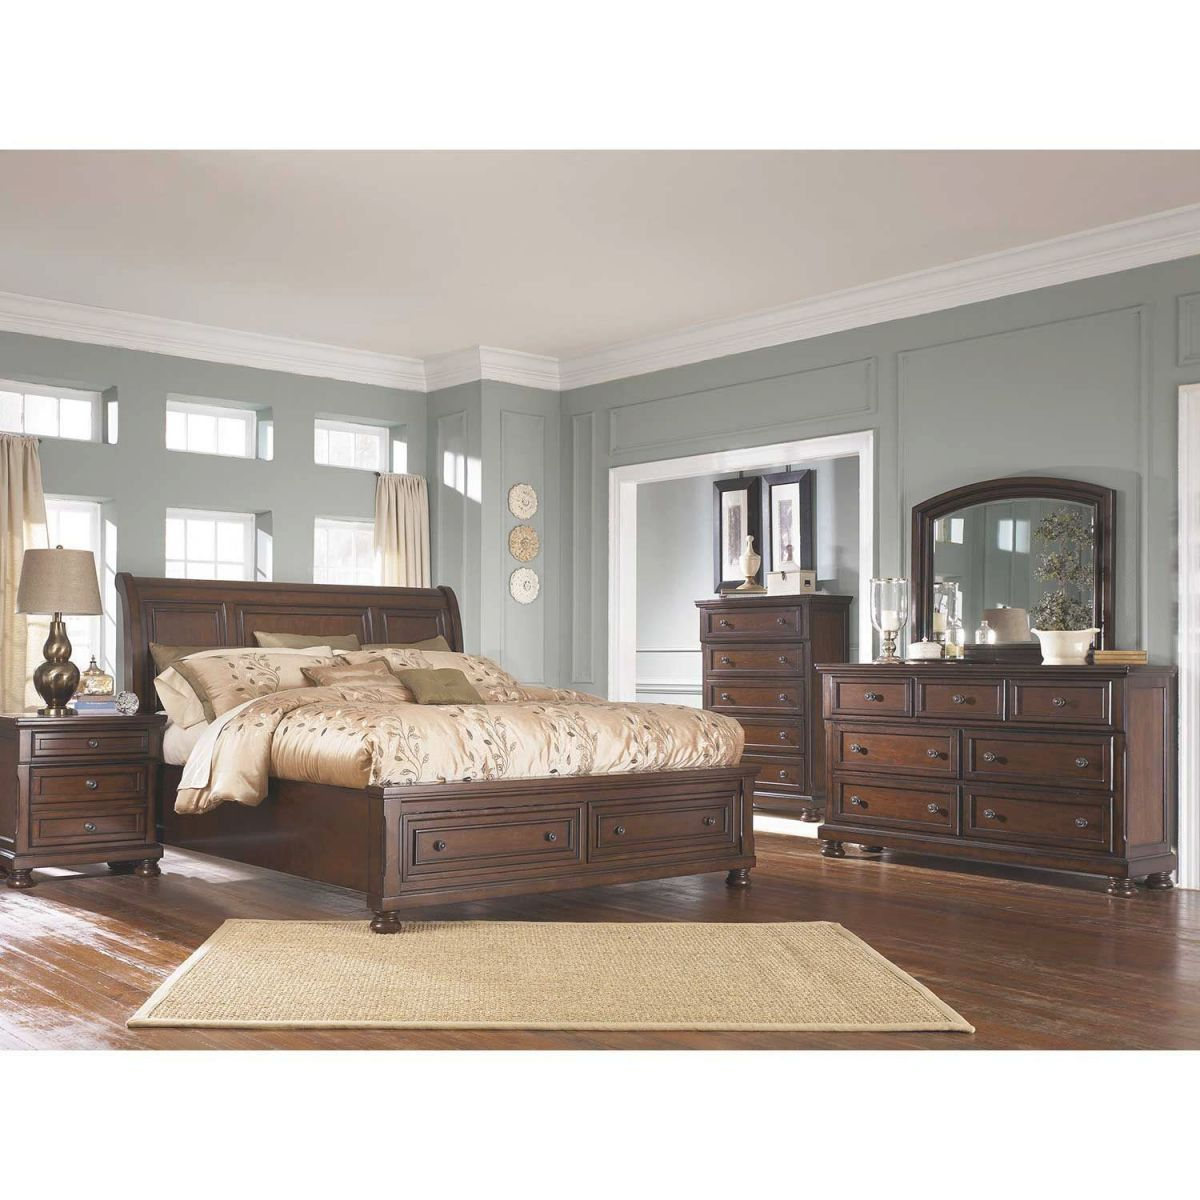 Awesome Ashley Furniture King Size Bedroom Sets Awesome Decors